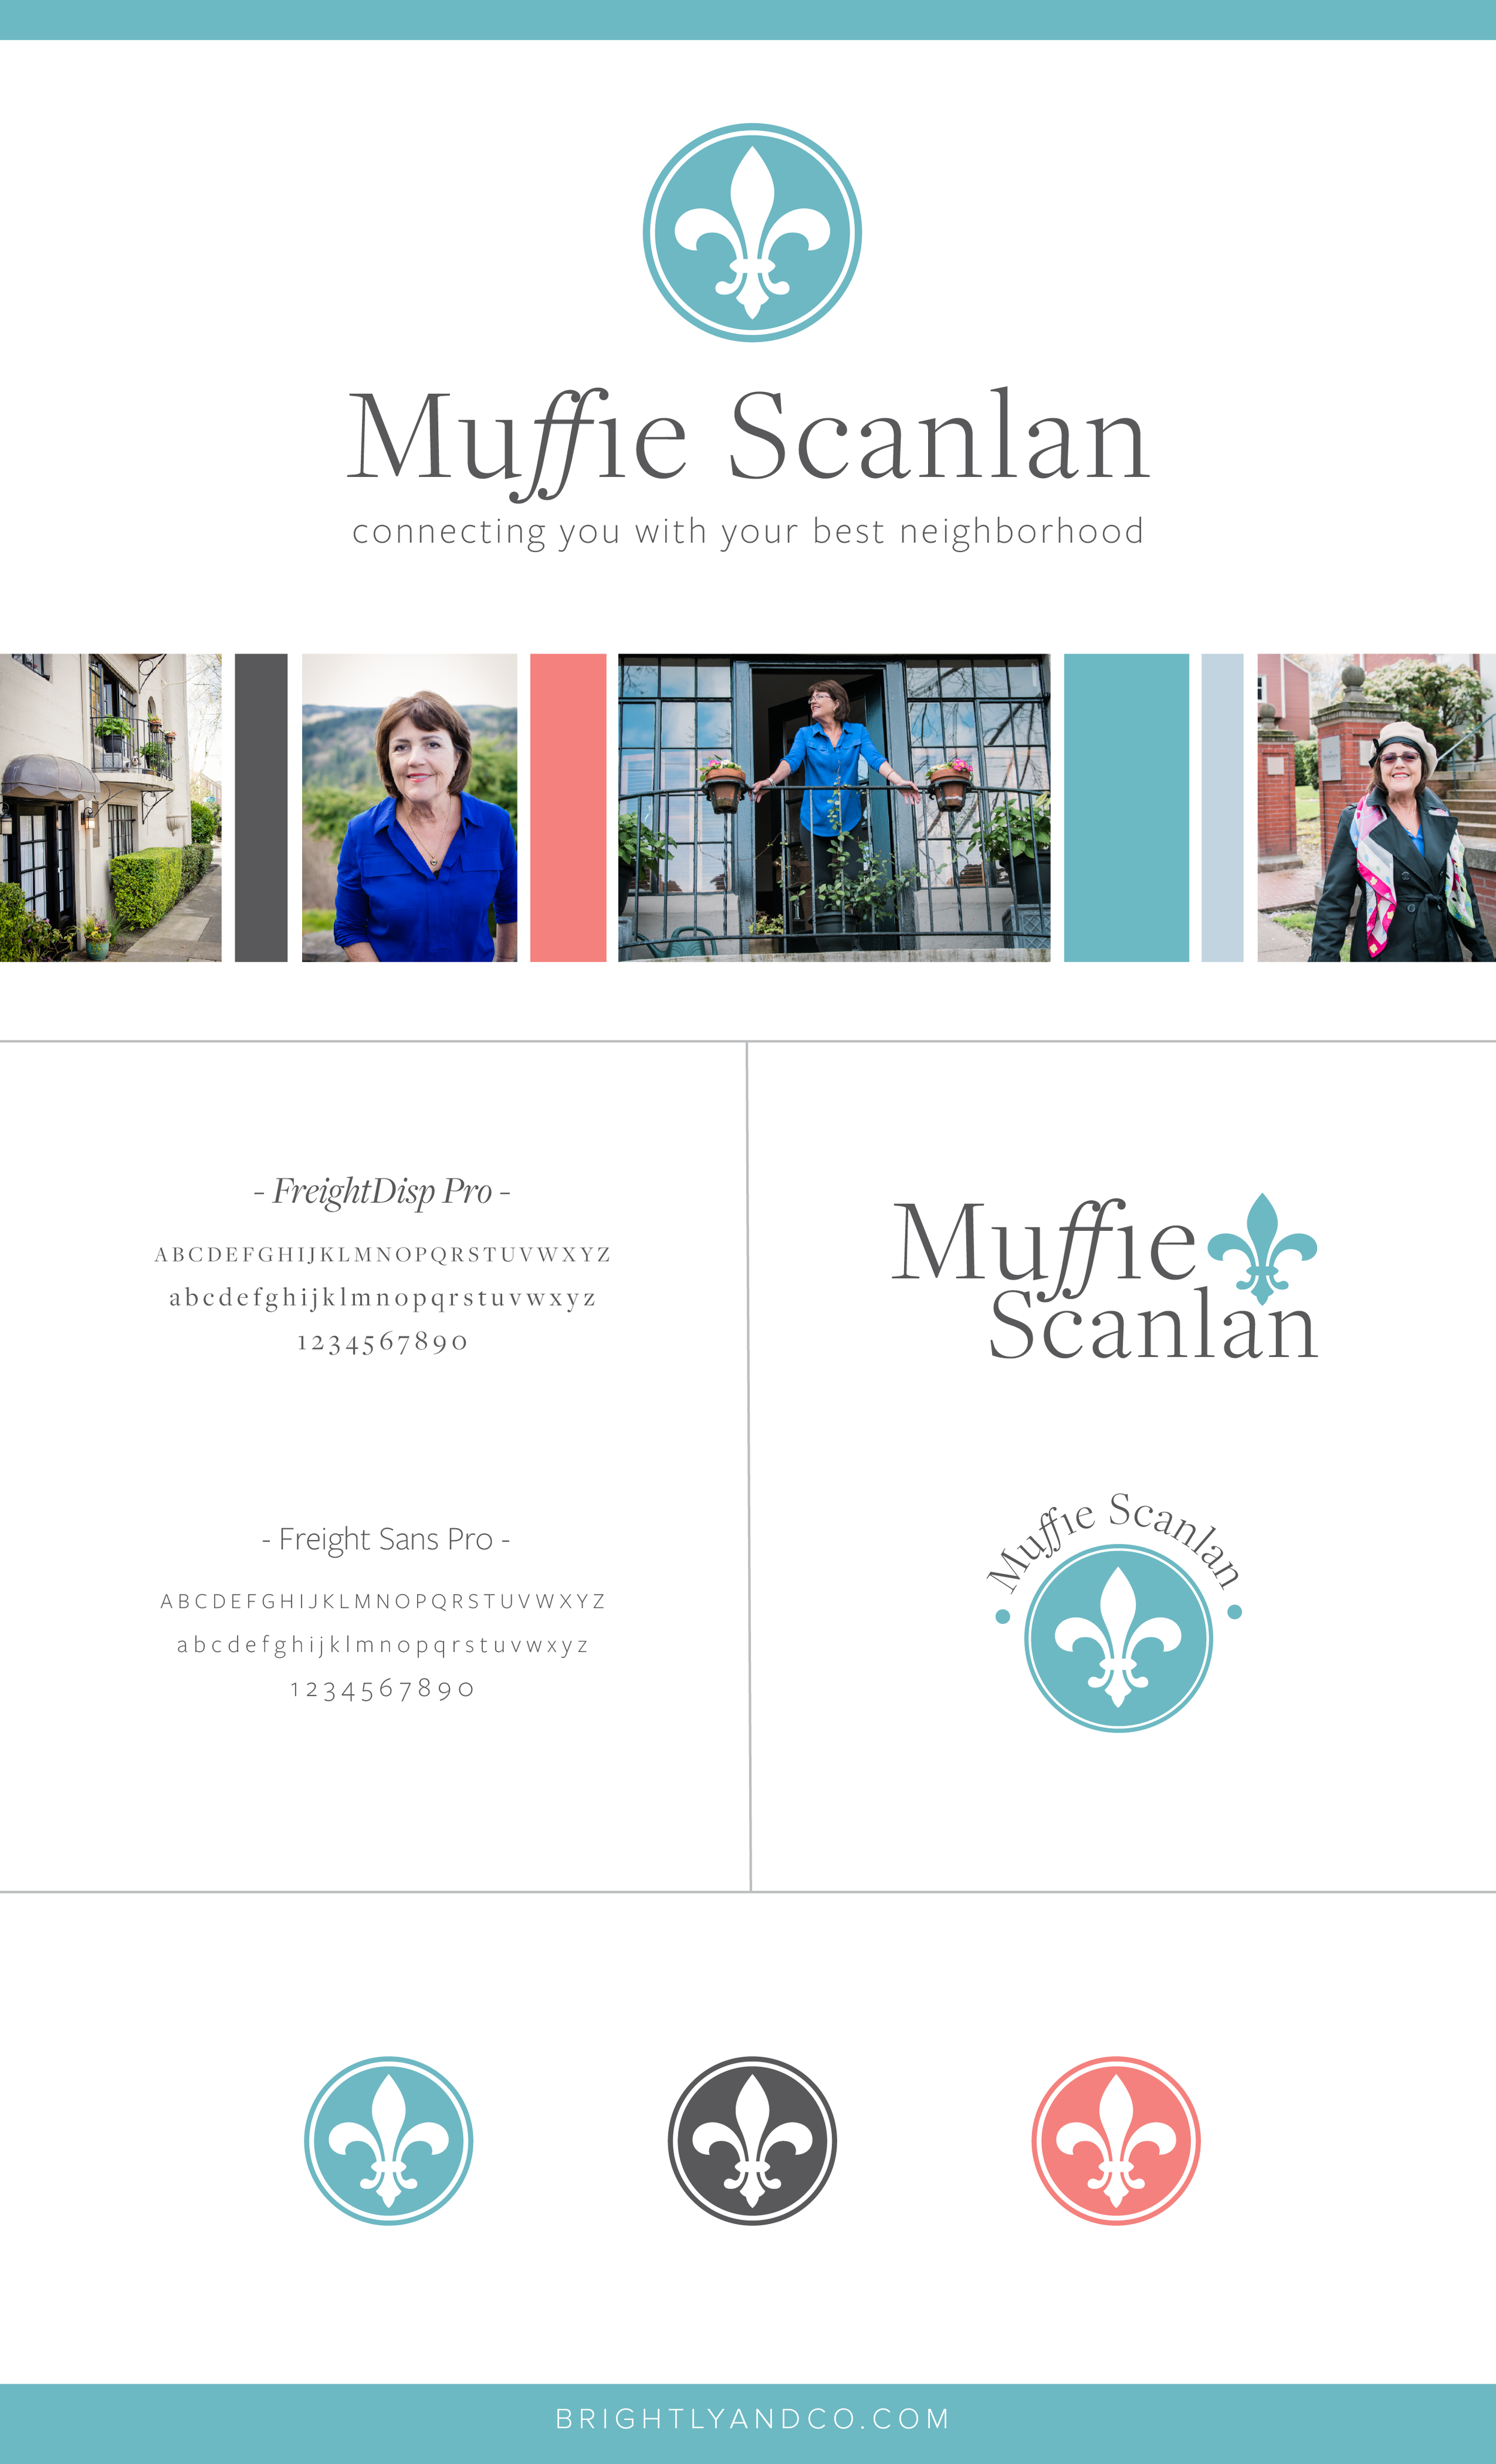 Muffie Scanlan Brand Design by Brightly and Co